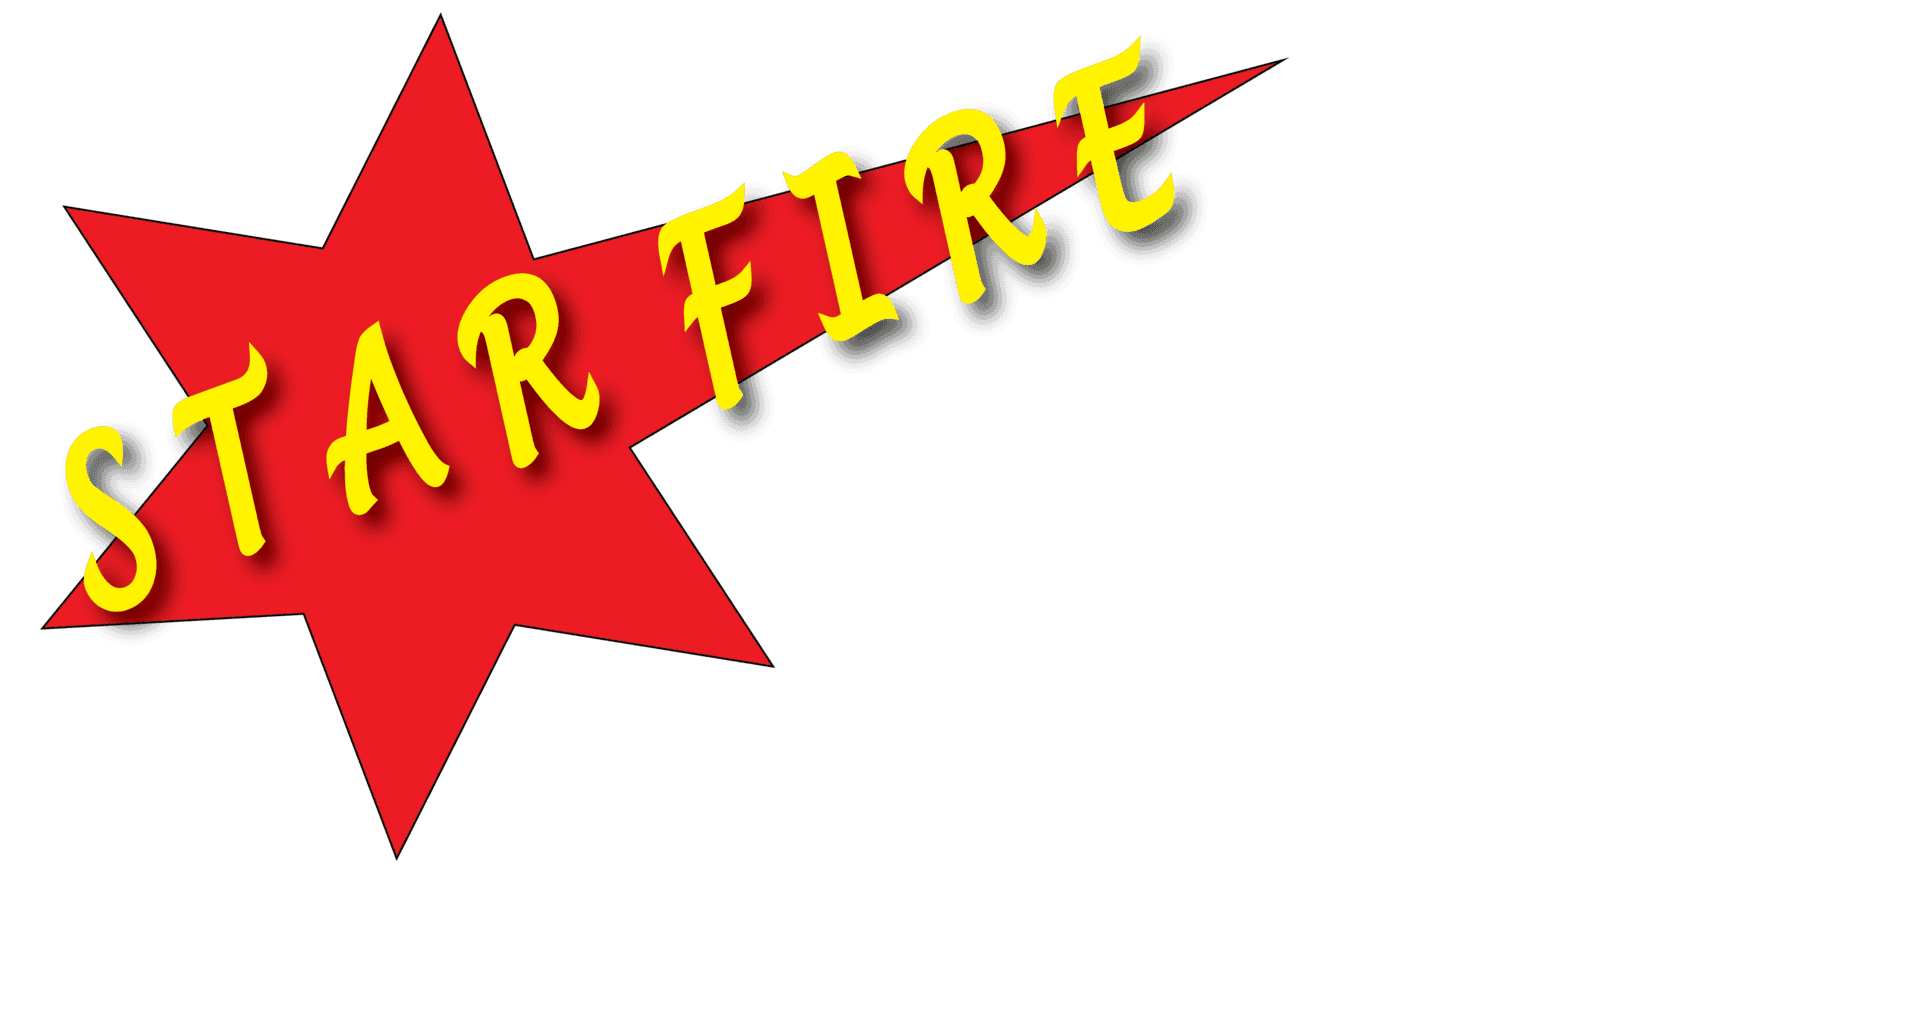 Fire protection services, Star Fire Protection